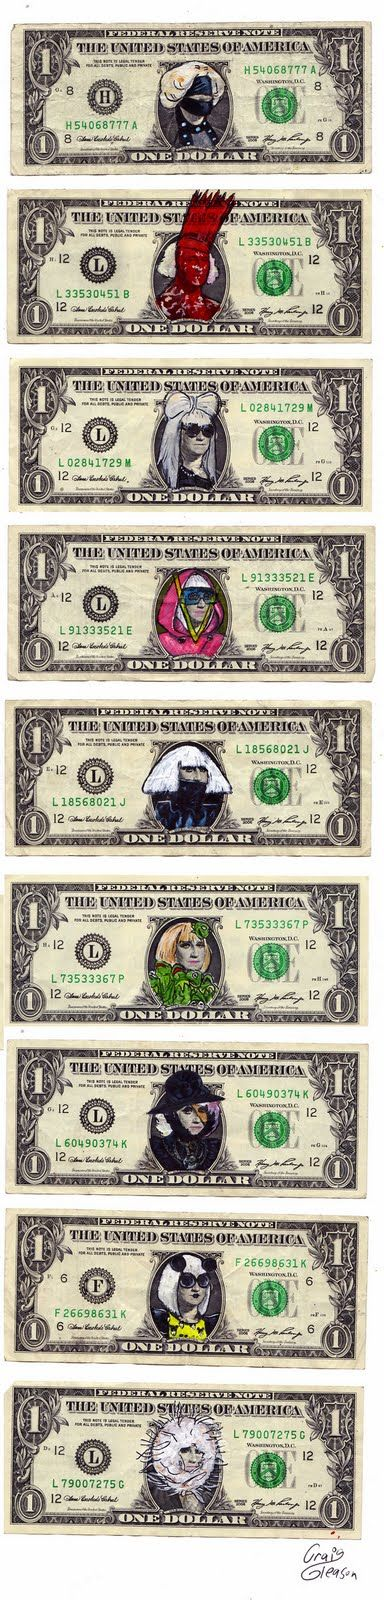 lady gaga on money